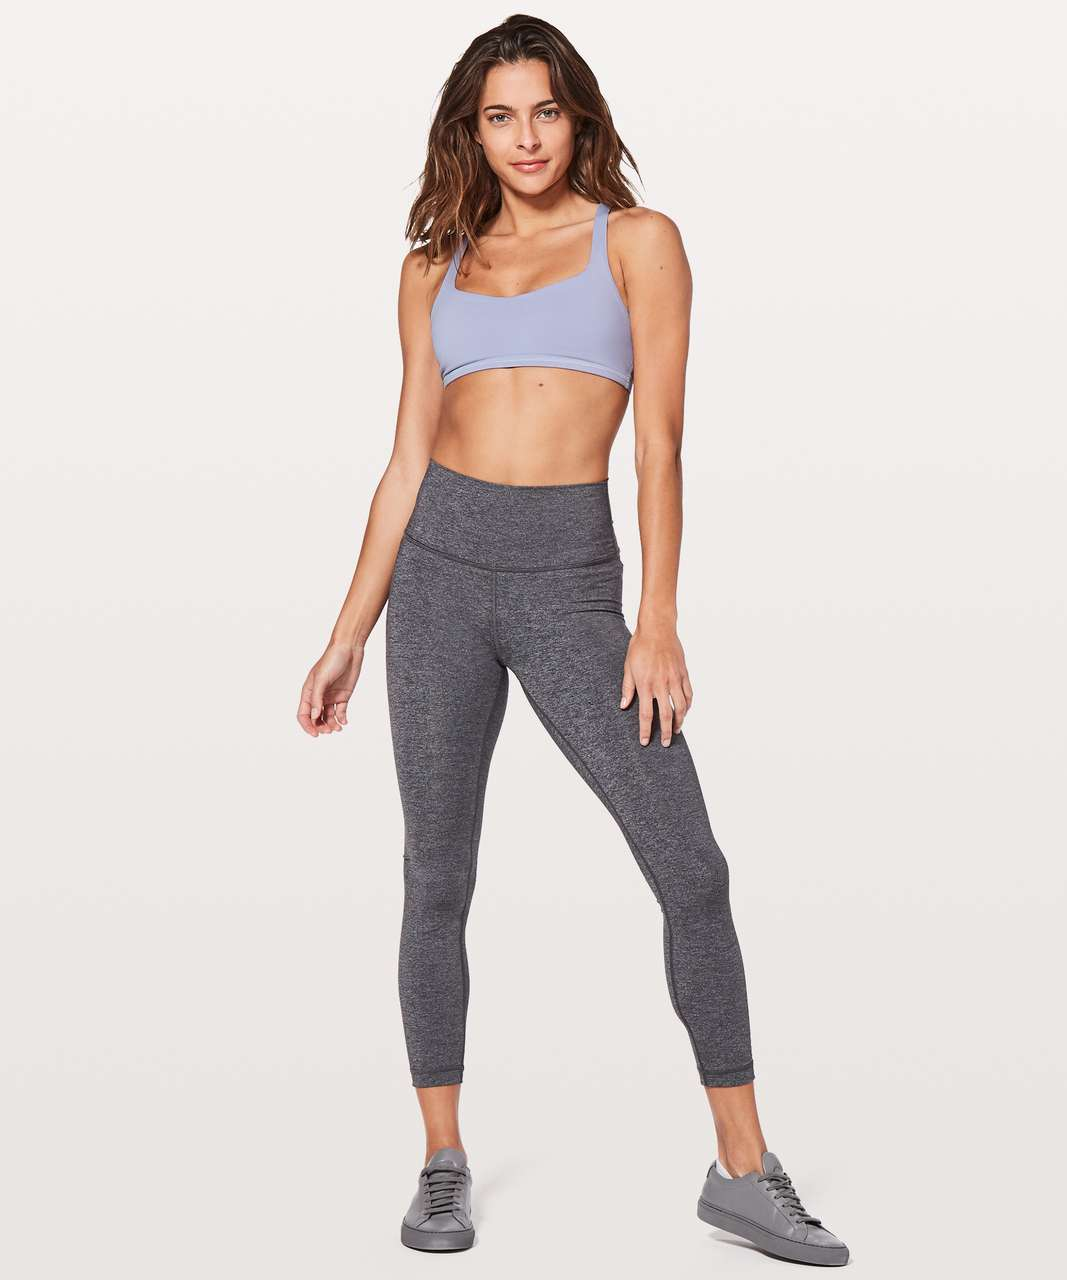 Lululemon Free To Be Bra - Berry Mist